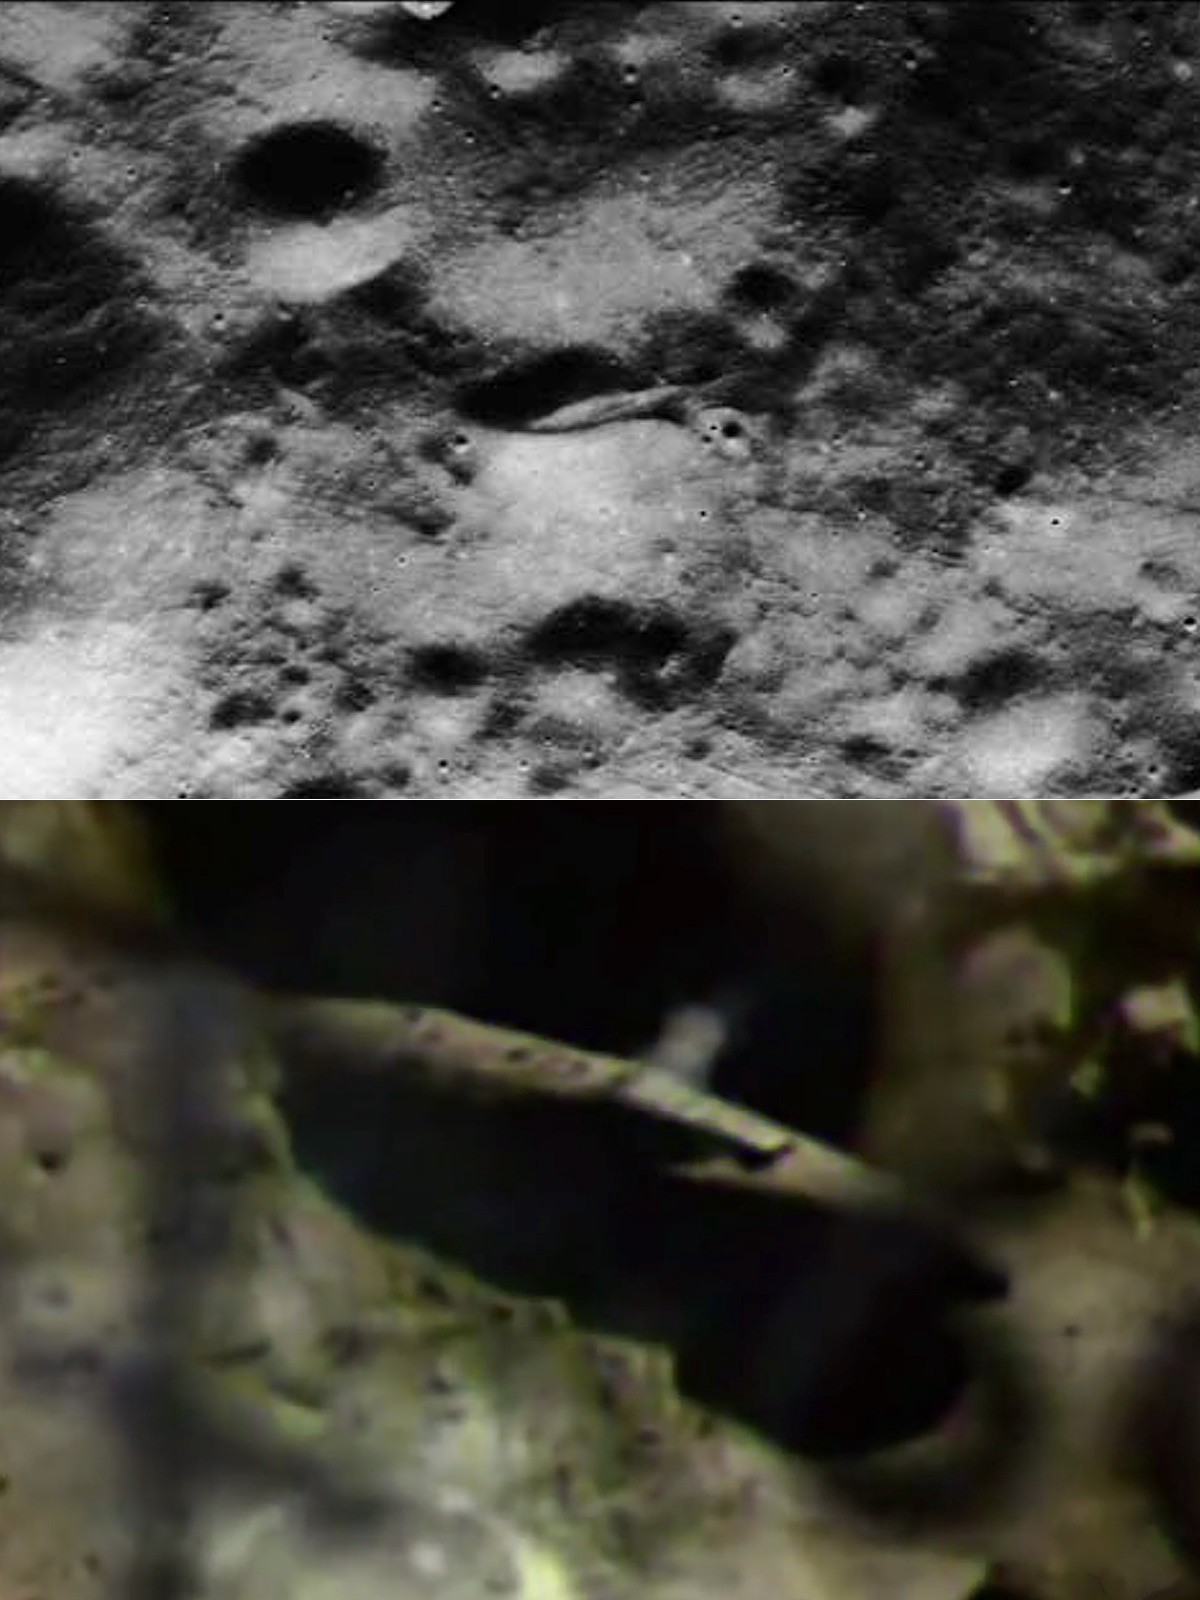 The craft shown in Rutledge's videos match the anomaly captured by Apollo 15